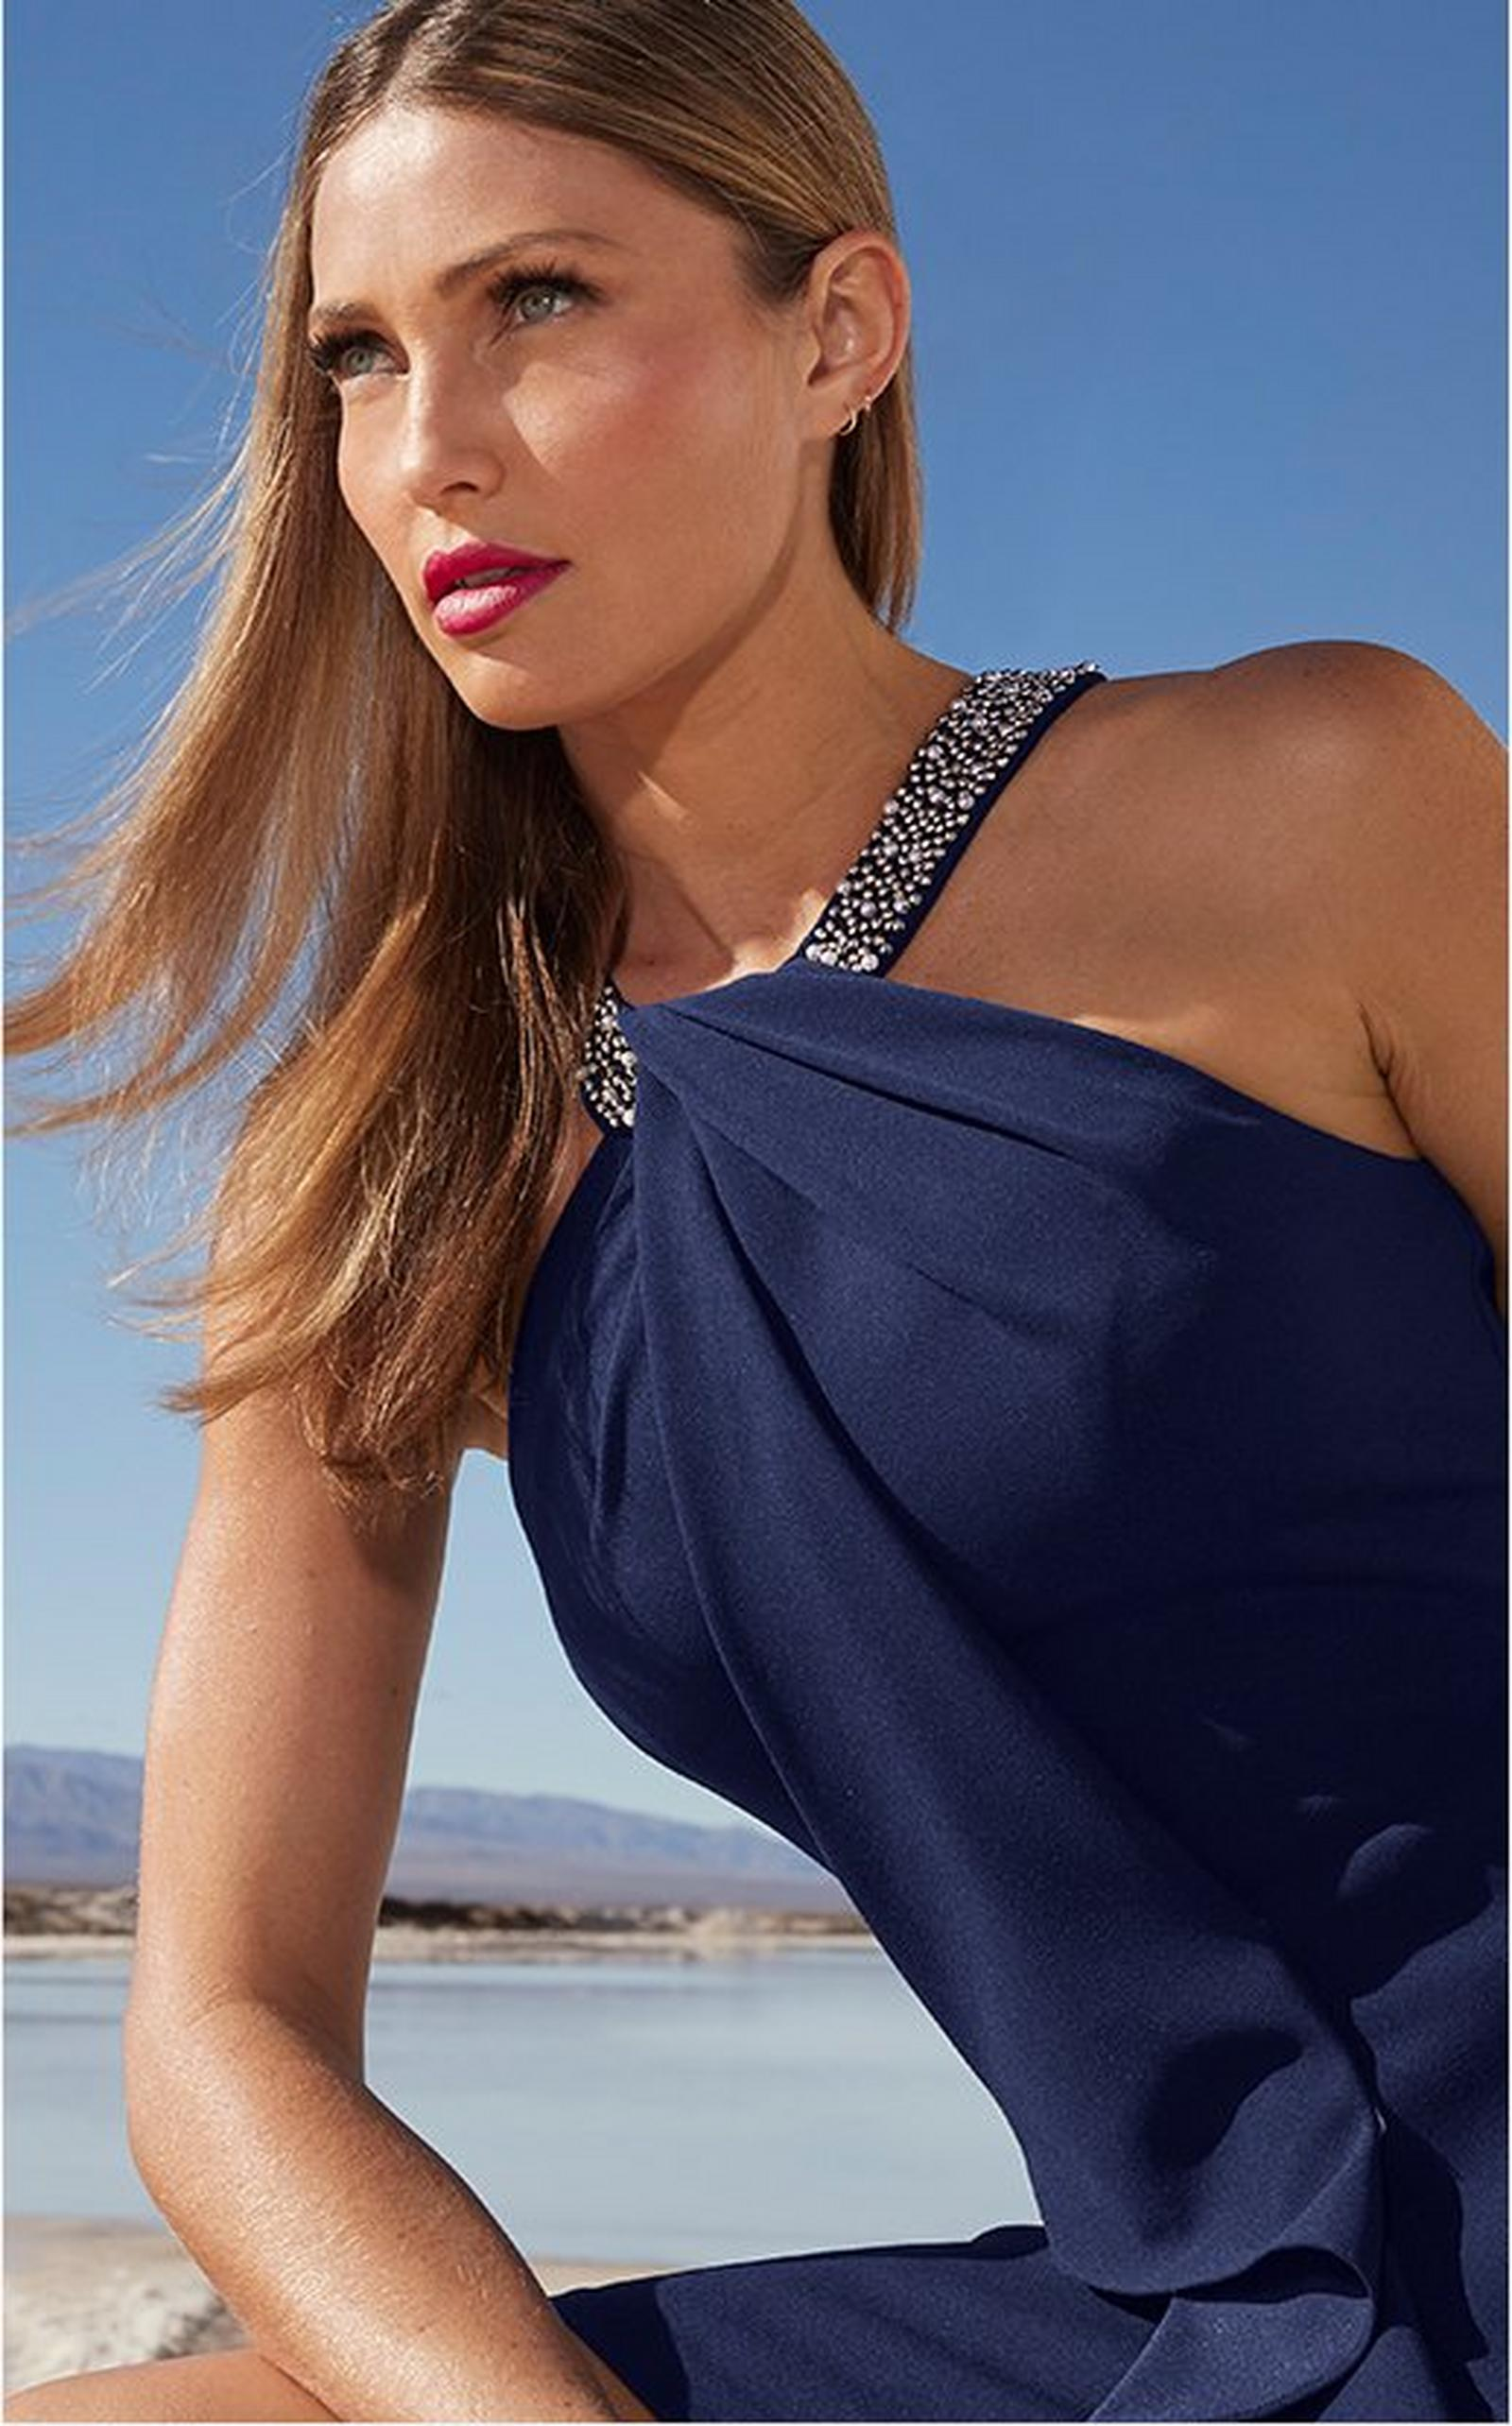 model wearing a blue dress with a sequin neckline.